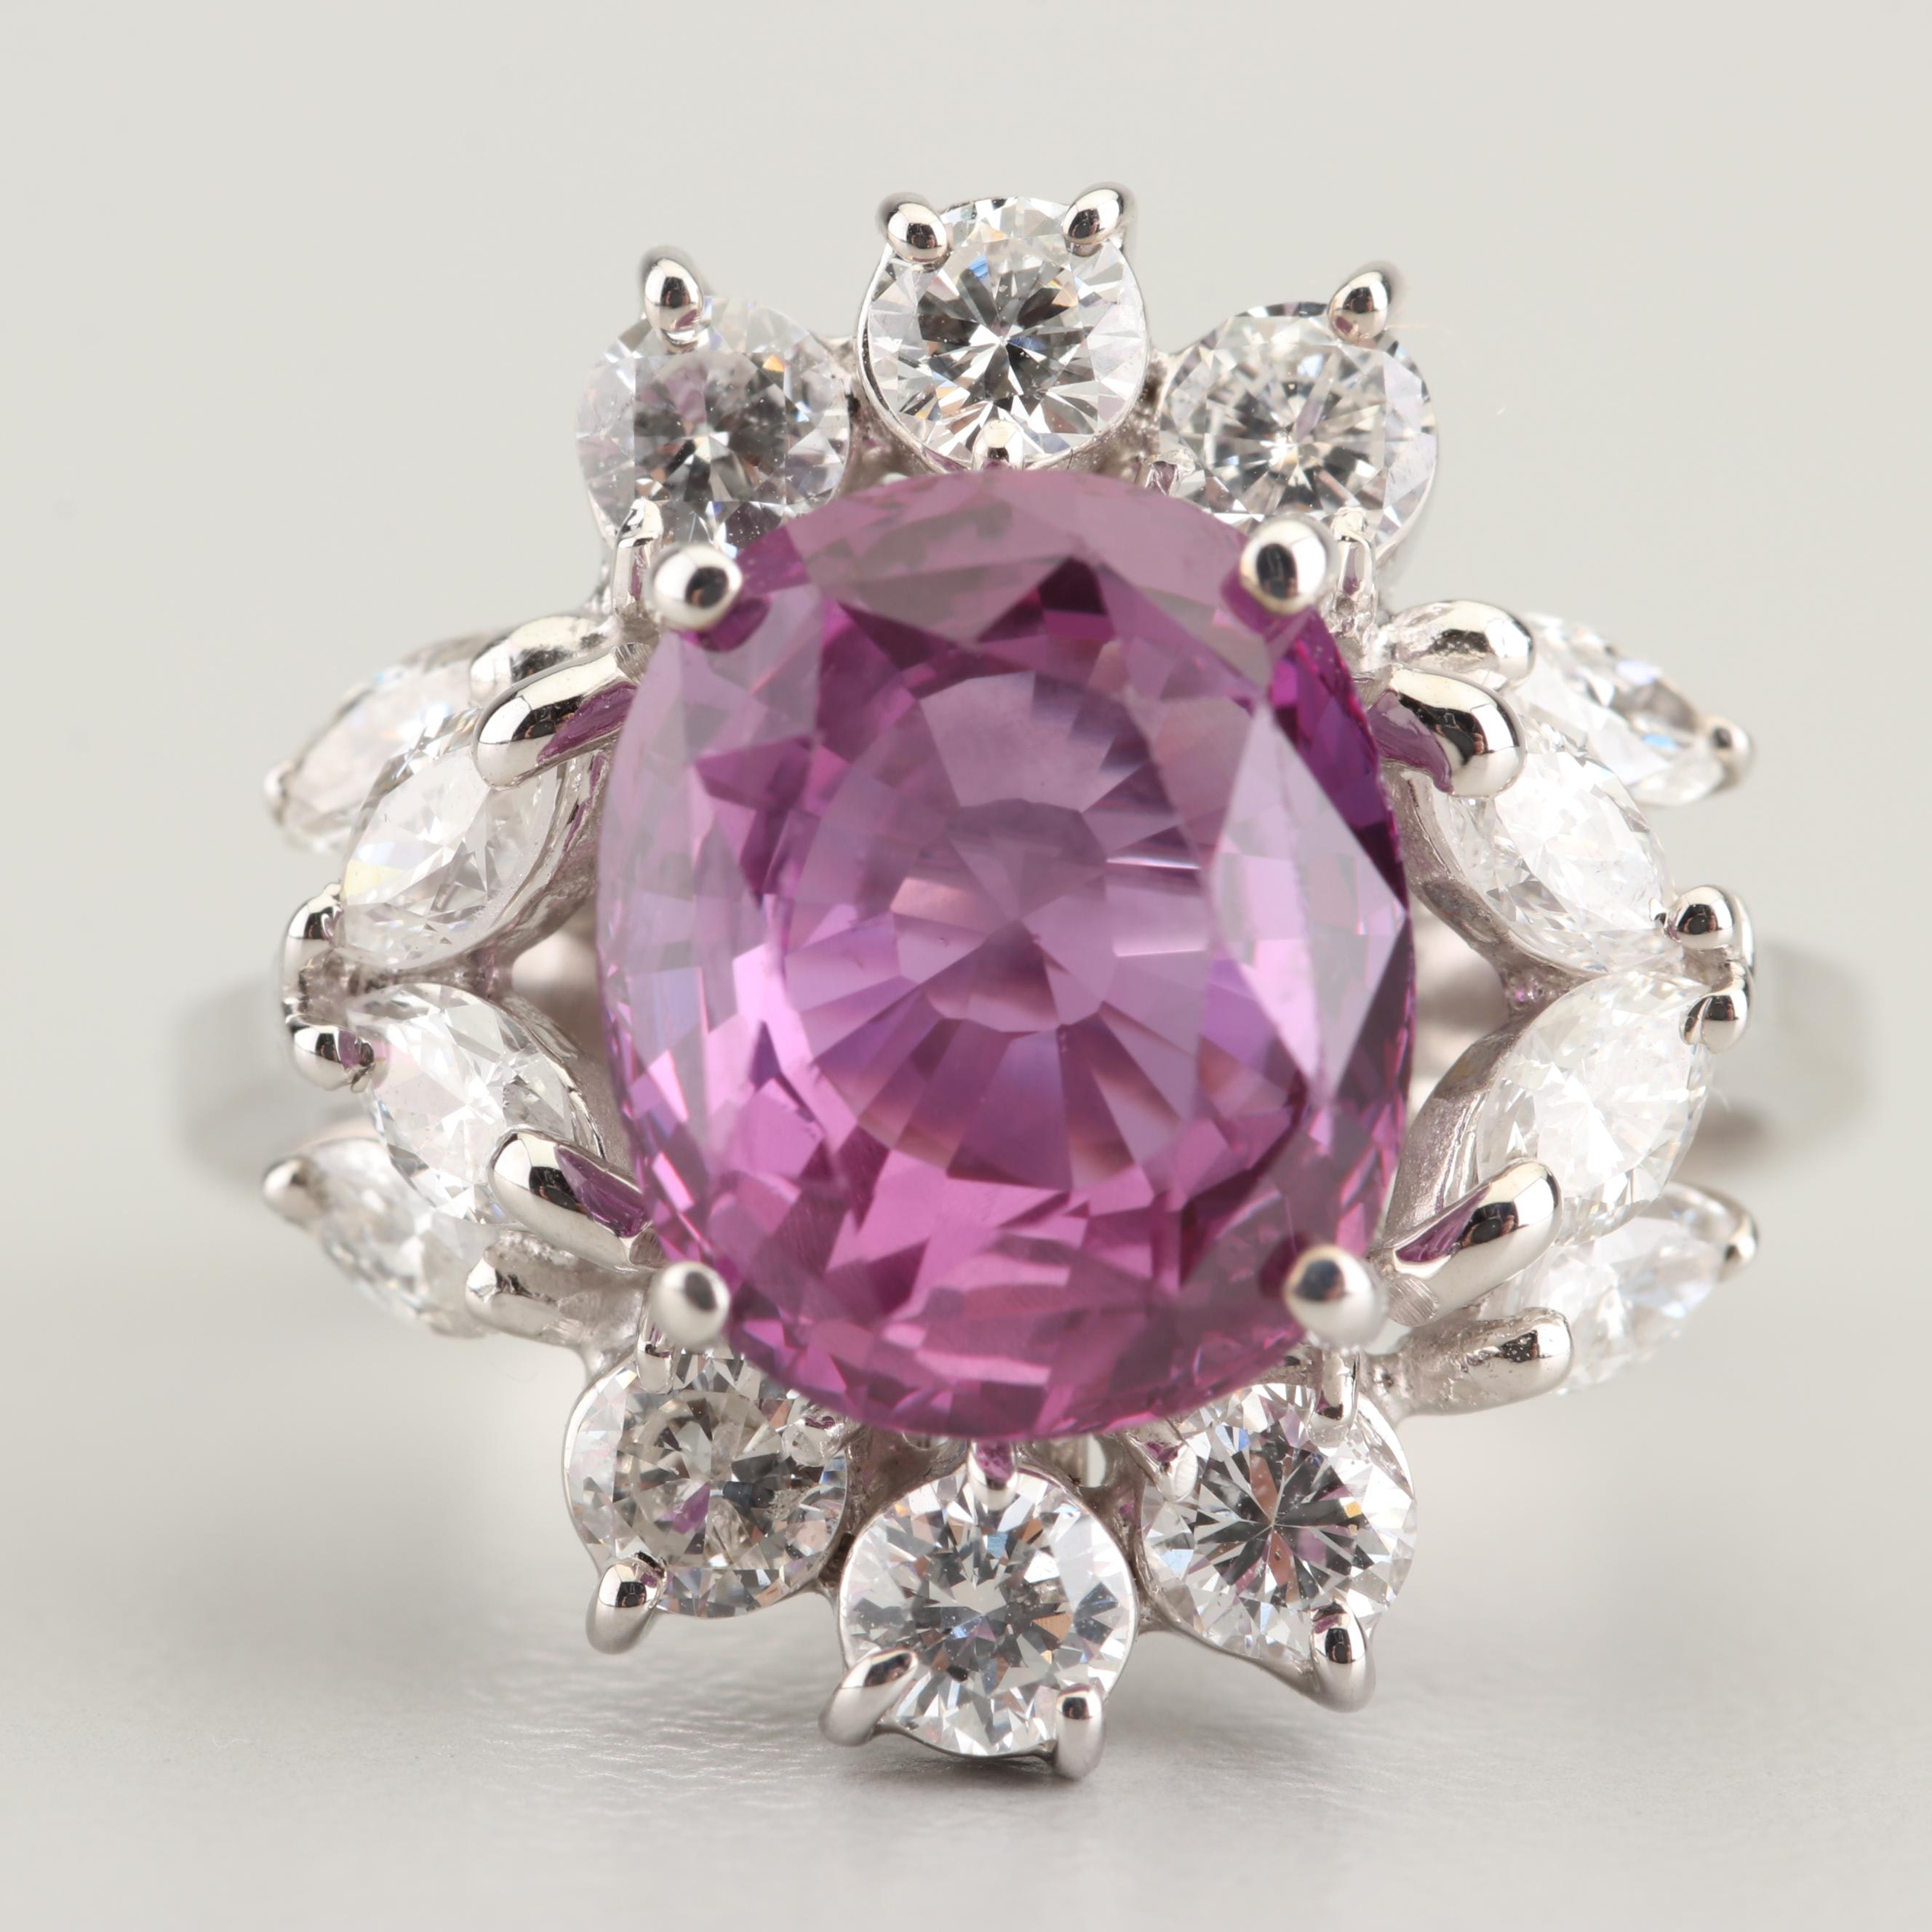 18K Gold Sri Lankan 4.20 CT Pink Sapphire and 1.25 CTW Diamond Ring with GIA